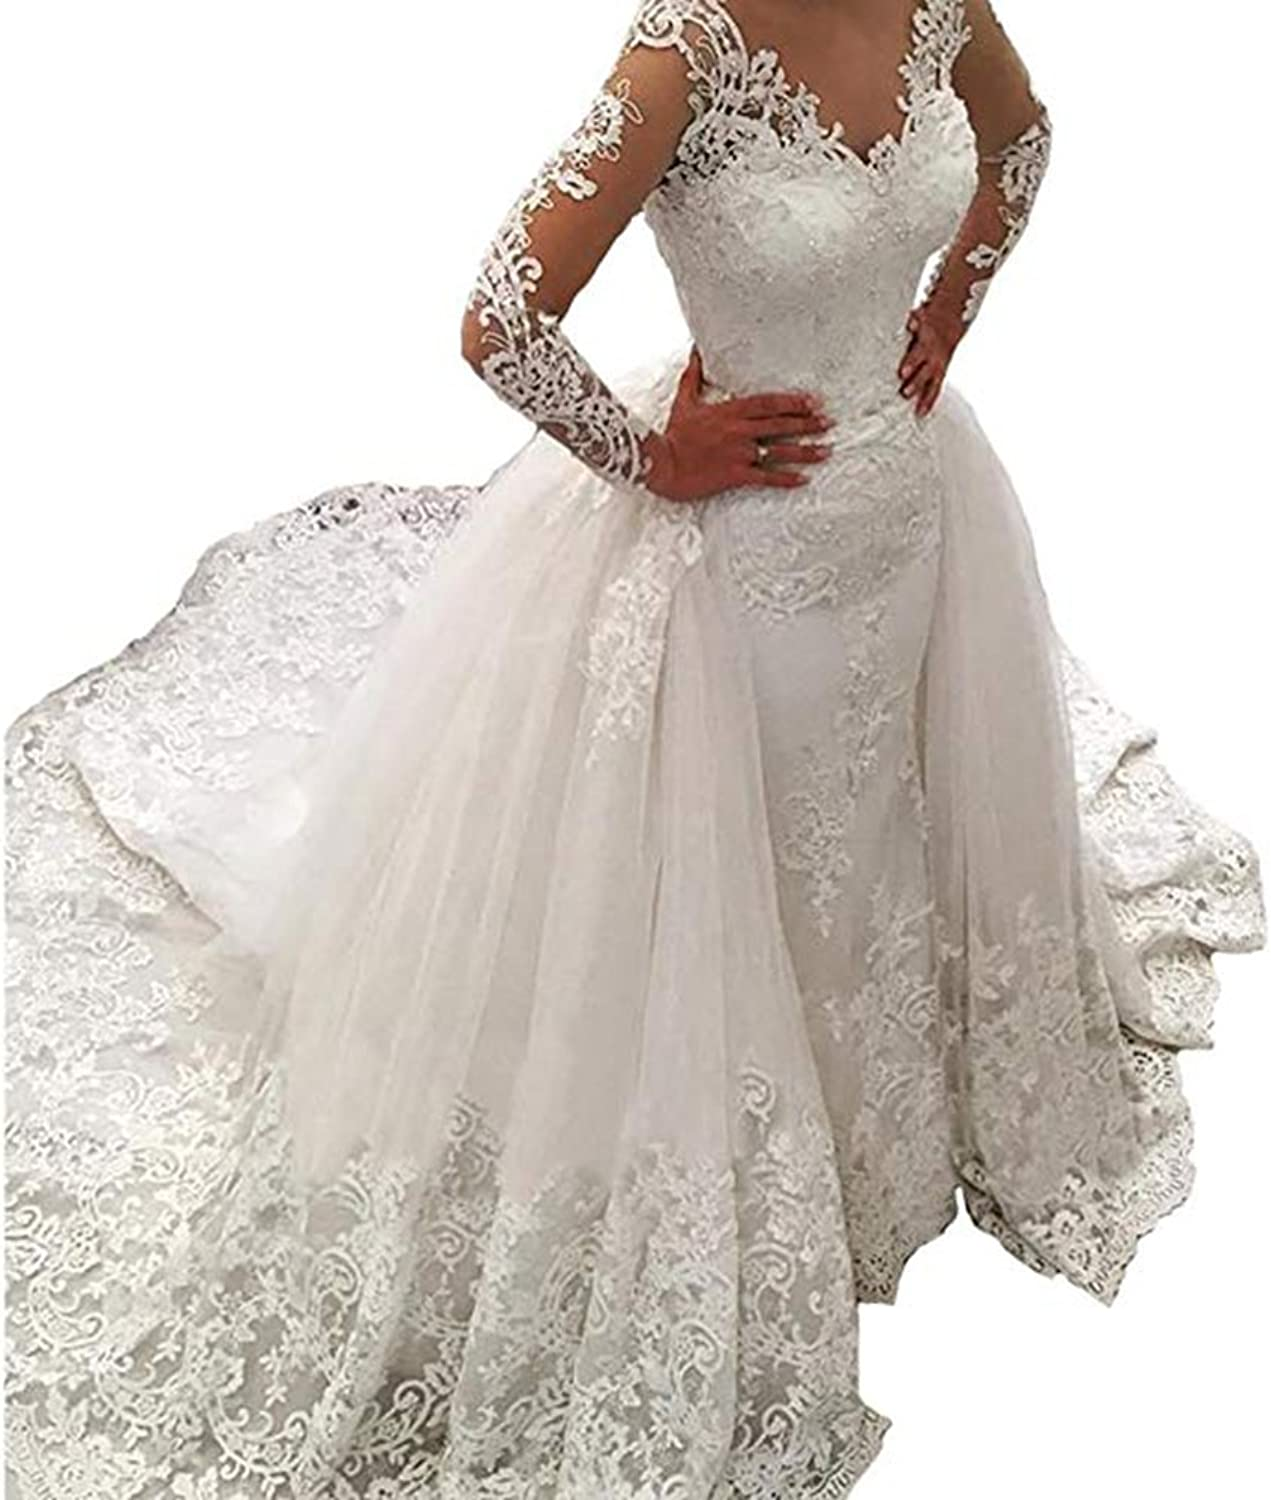 HerDress Womens Mermaid Wedding Dresses Long Sleeves for Bride 2018 Lace Beading Wedding Ball Gown with Detachable Train